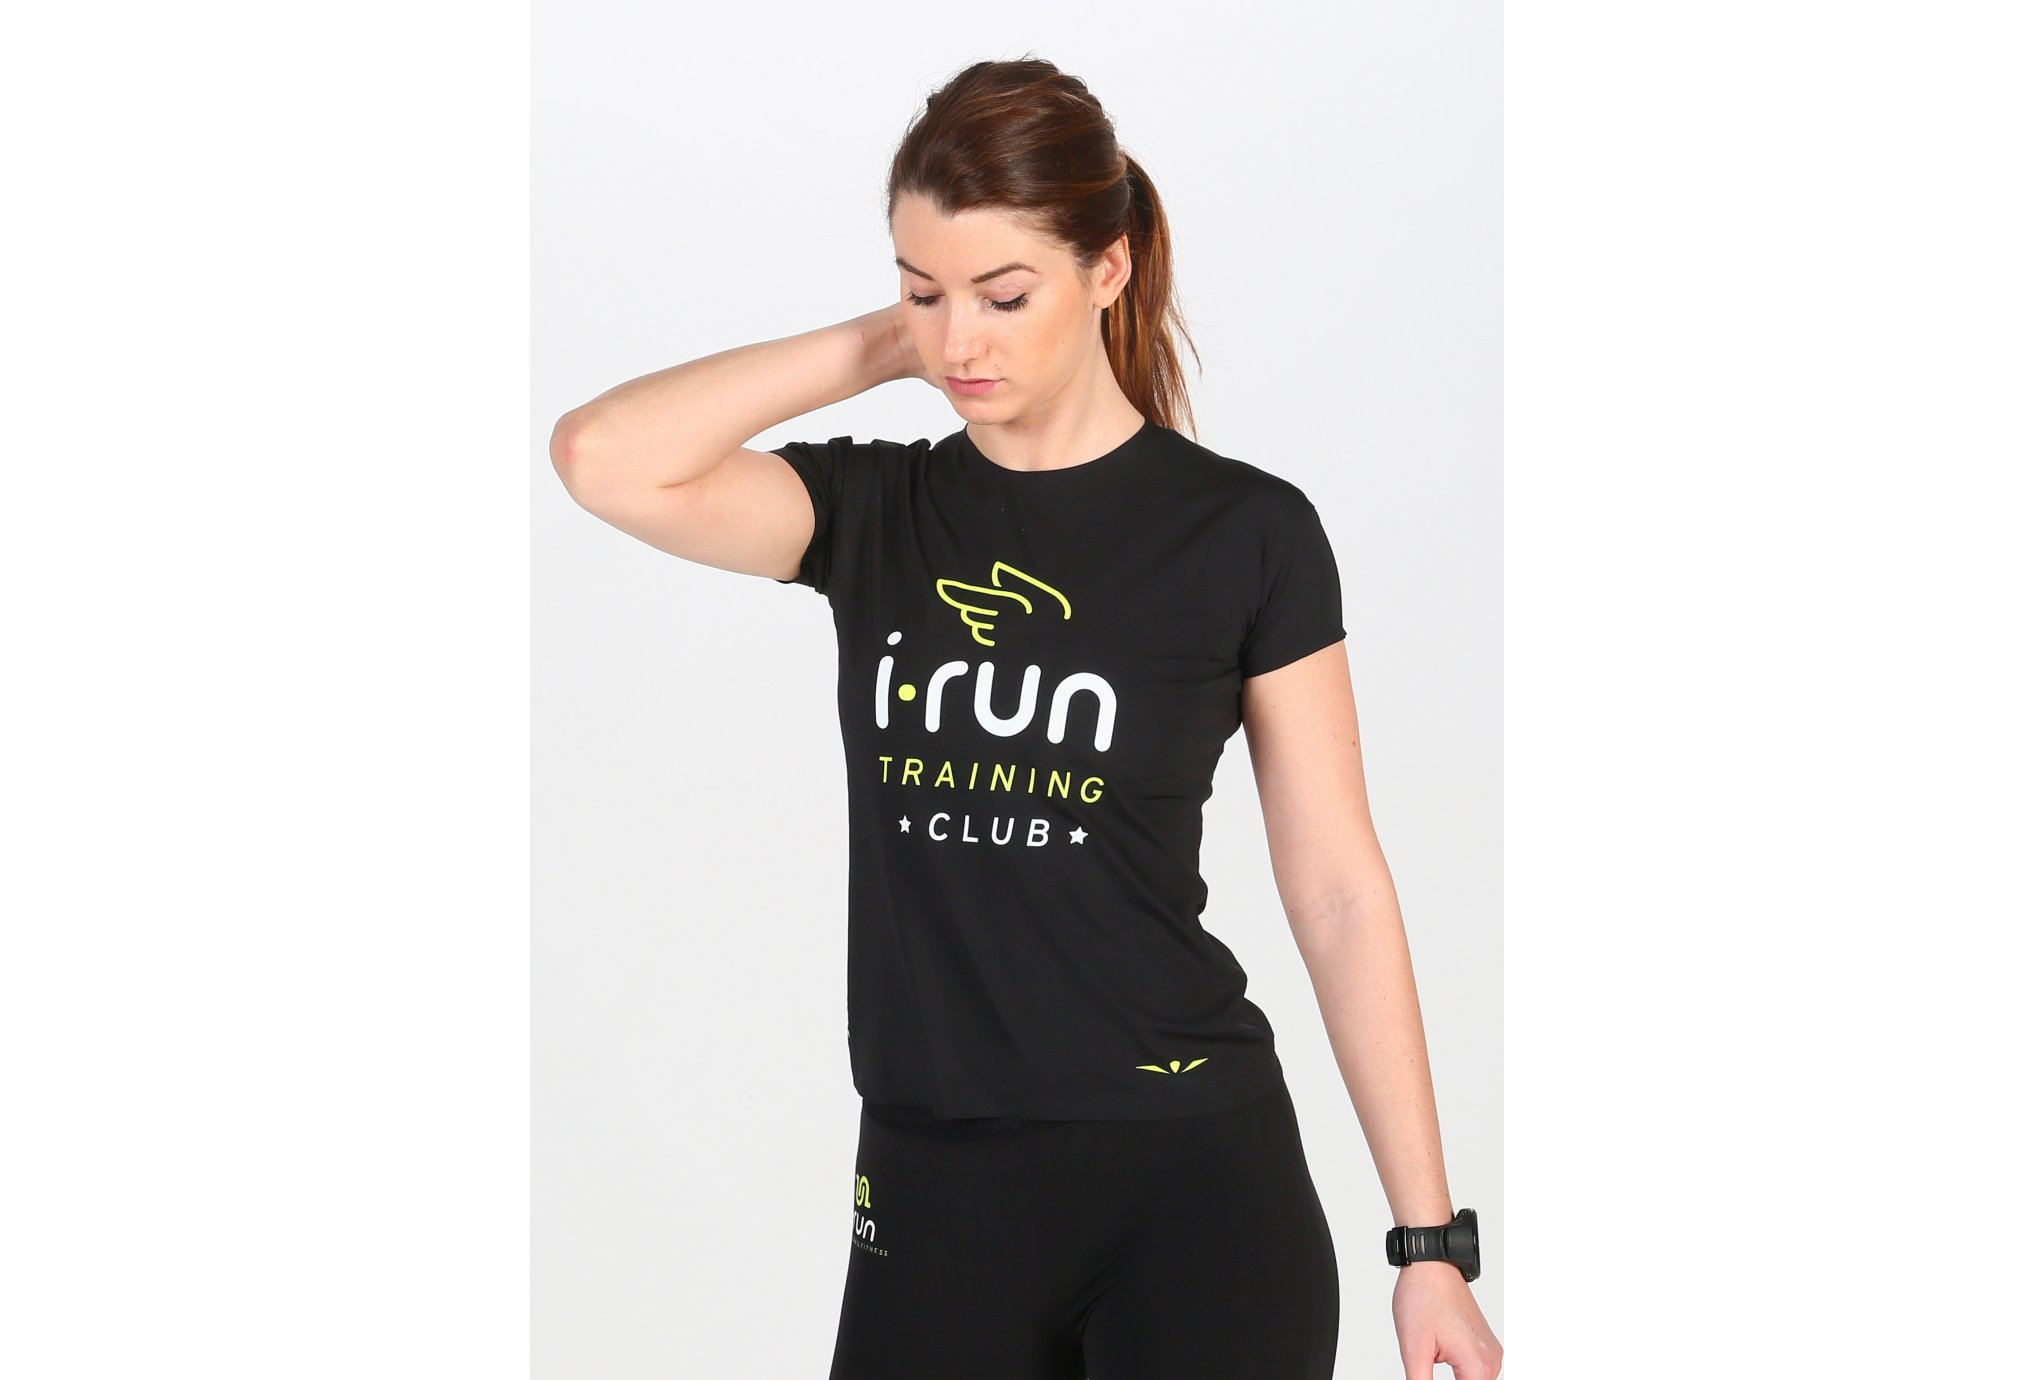 i-run.fr i-Run Training Club W vêtement running femme